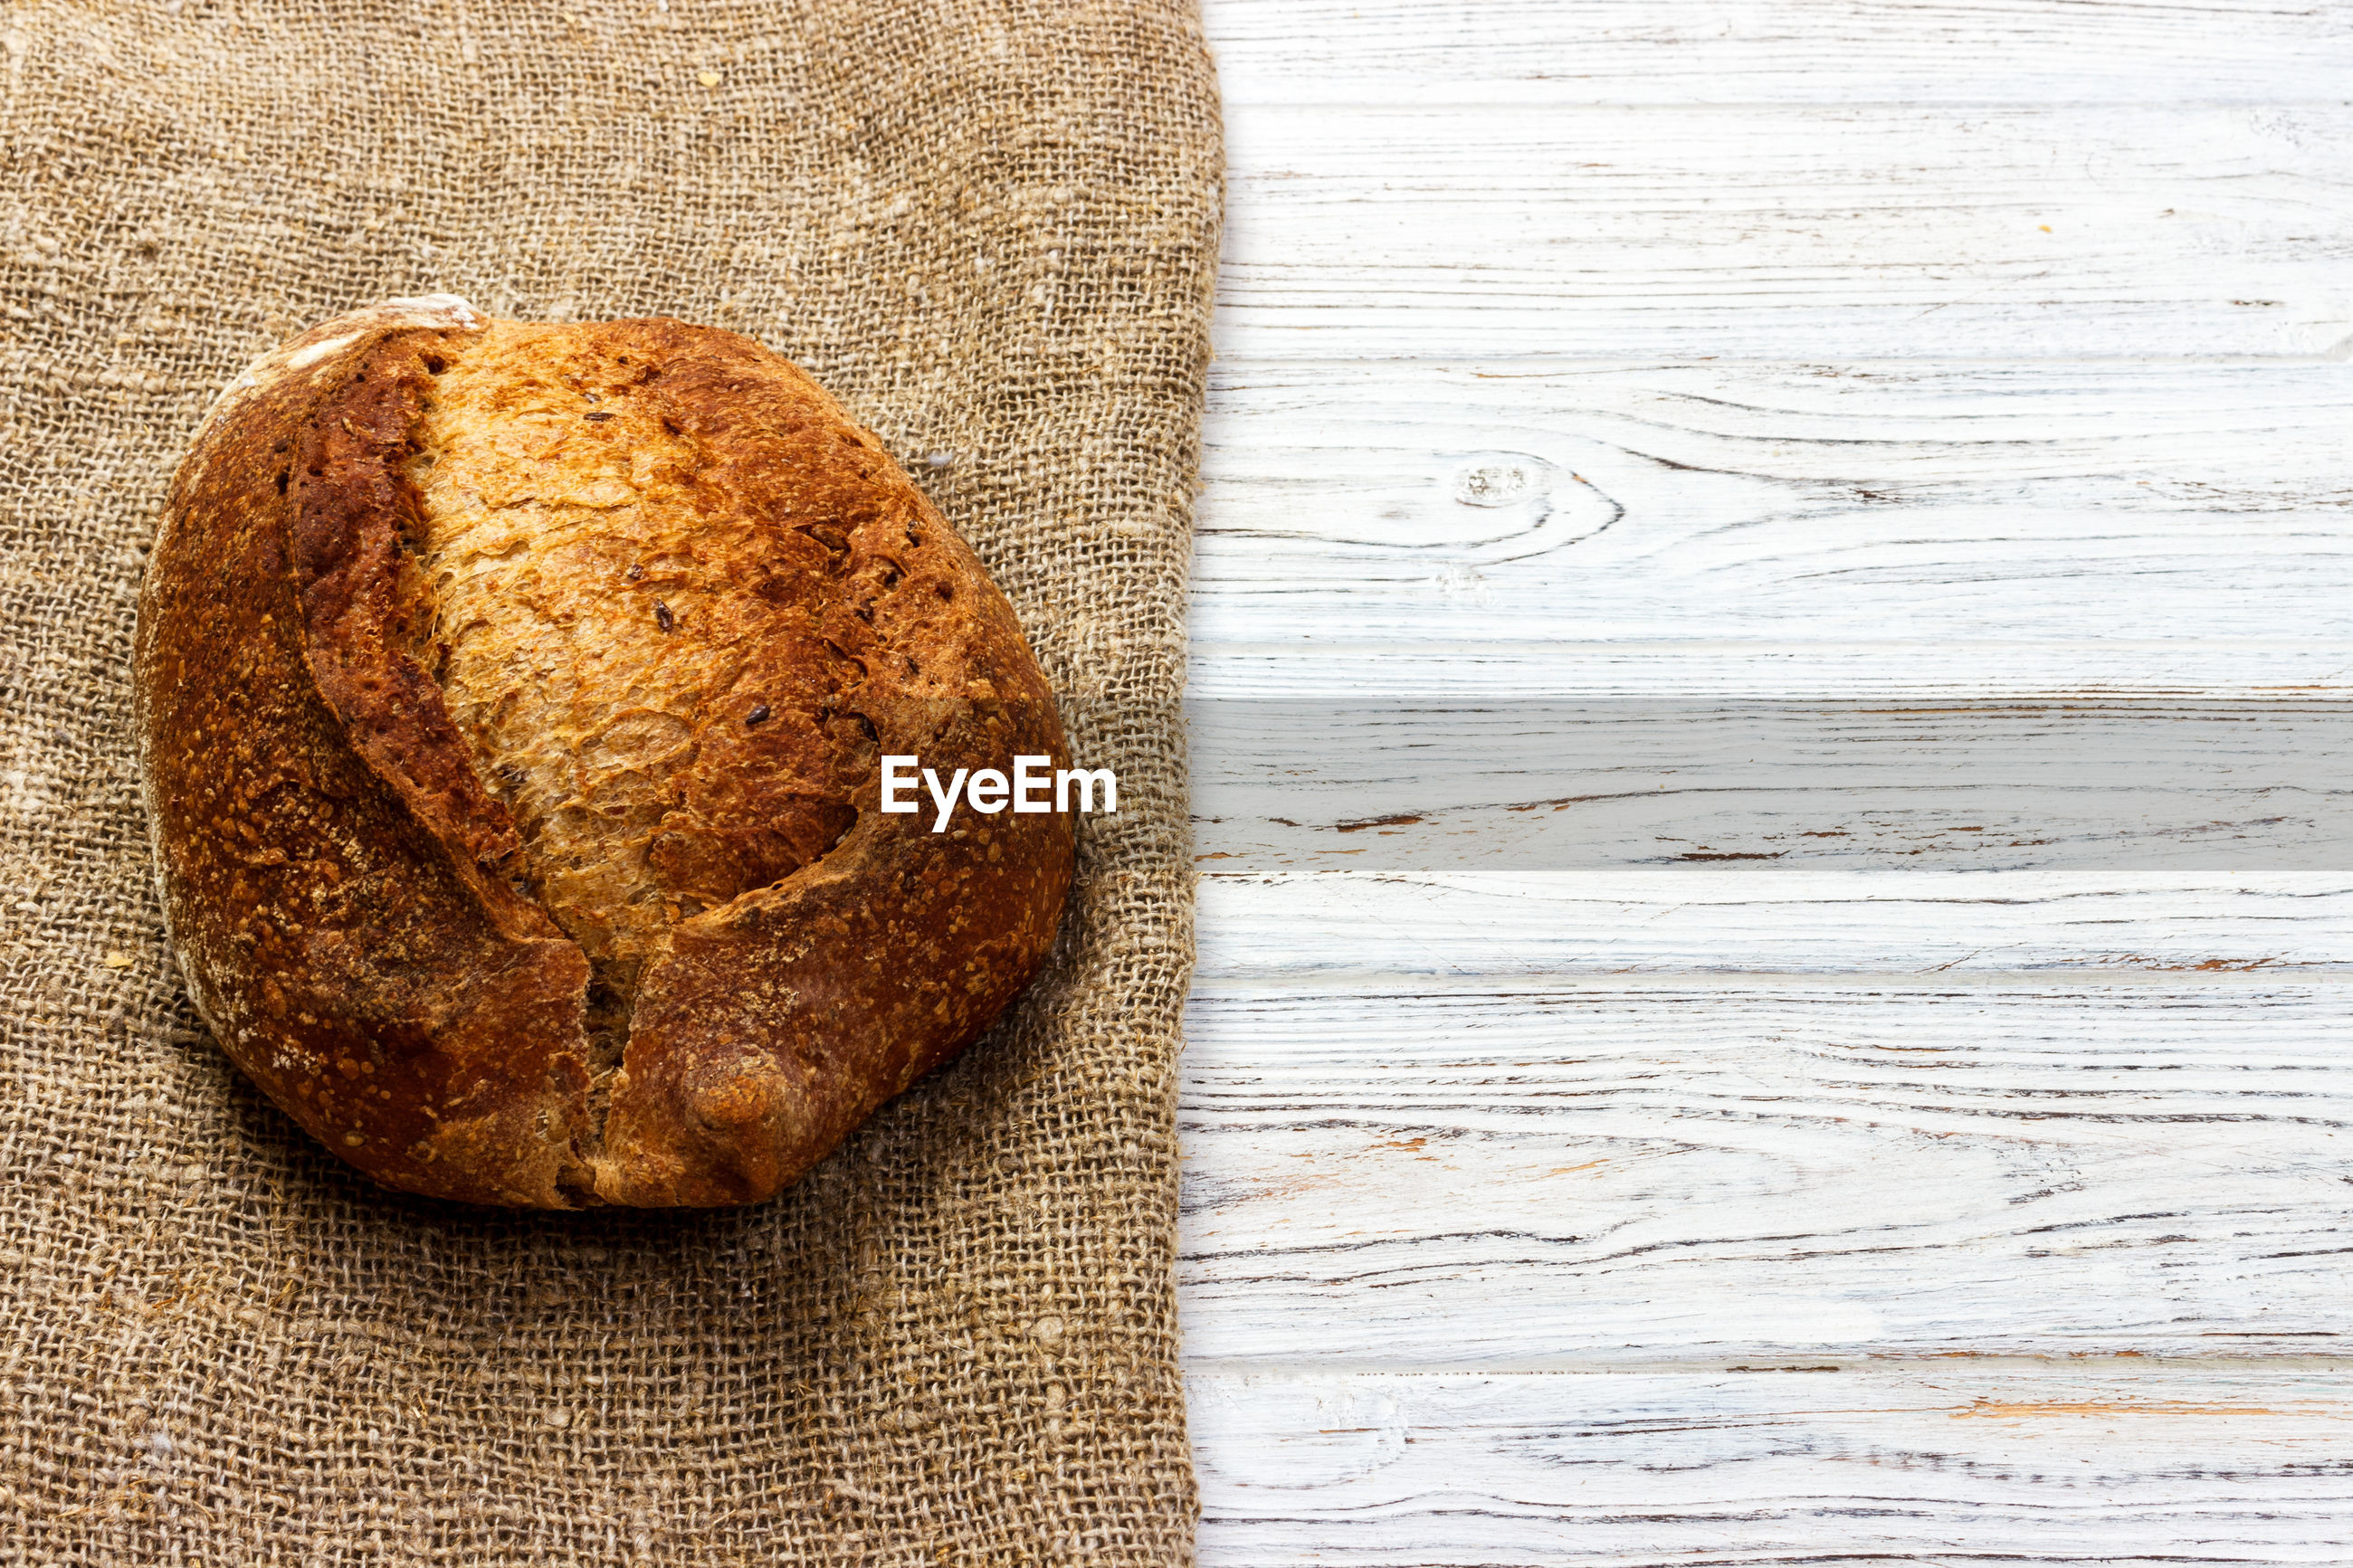 High angle view of bread and burlap on table